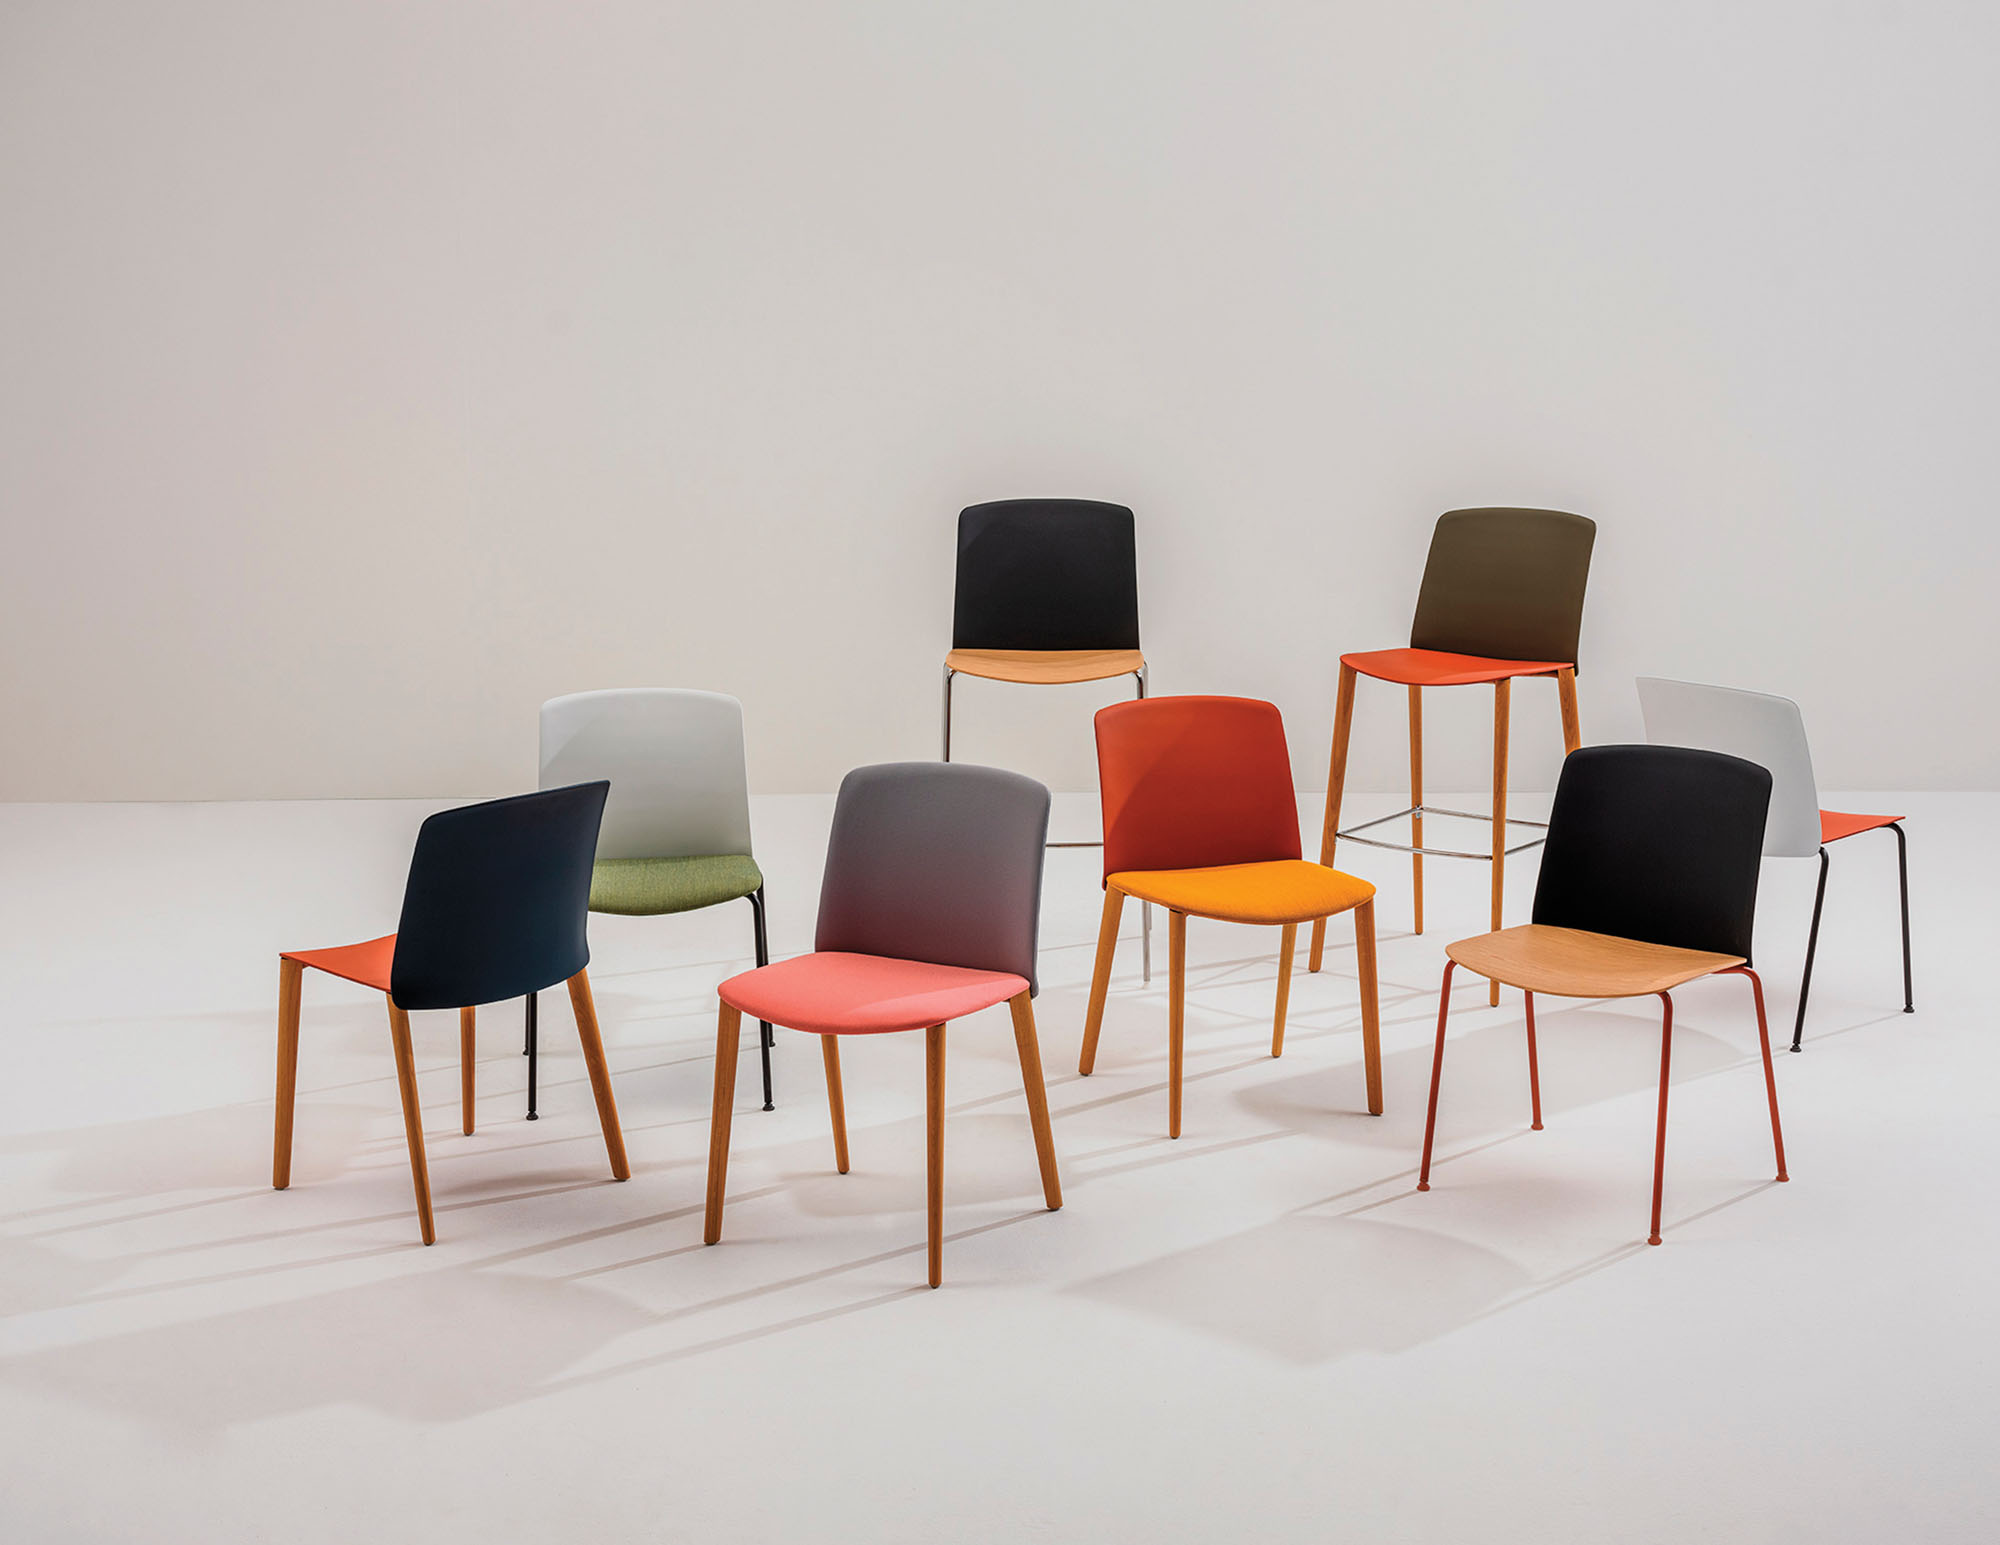 A group of colorful chairs